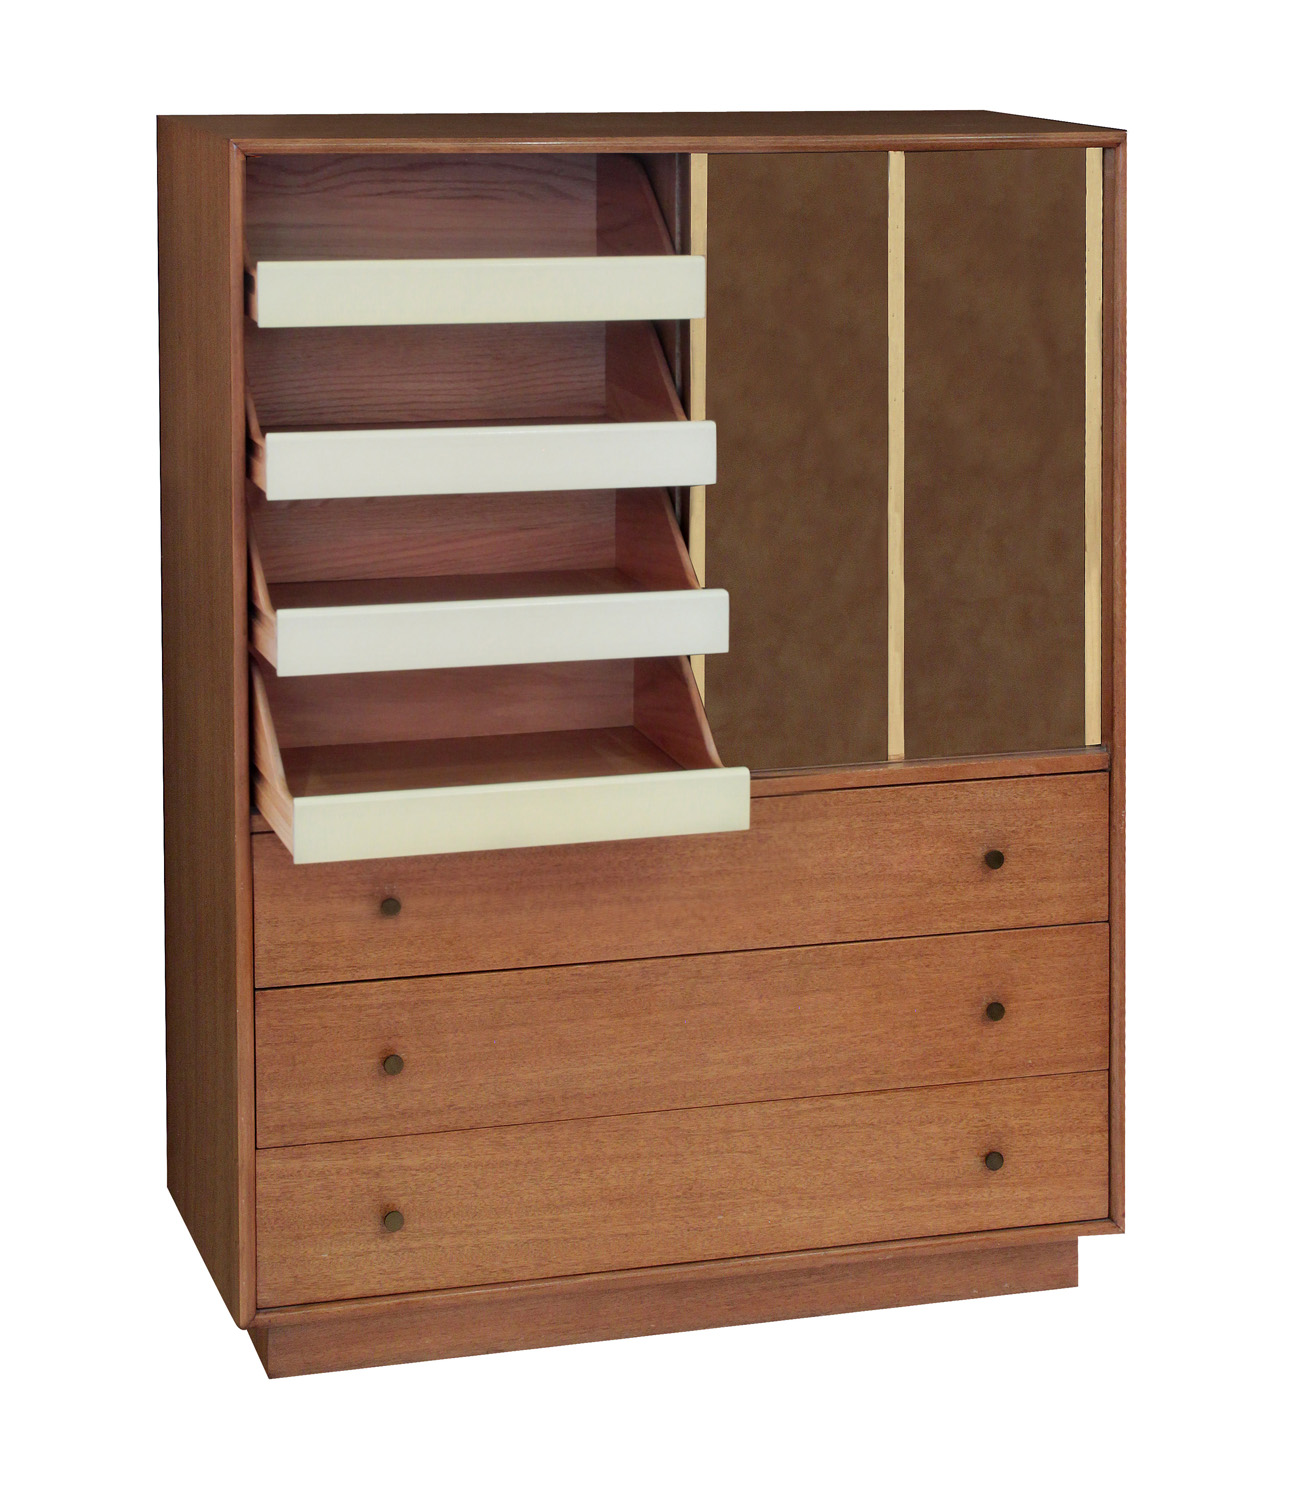 Probber 150 highboy mahg+lthr+brss 2x chestofdrawers136 detail1 hires.jpg